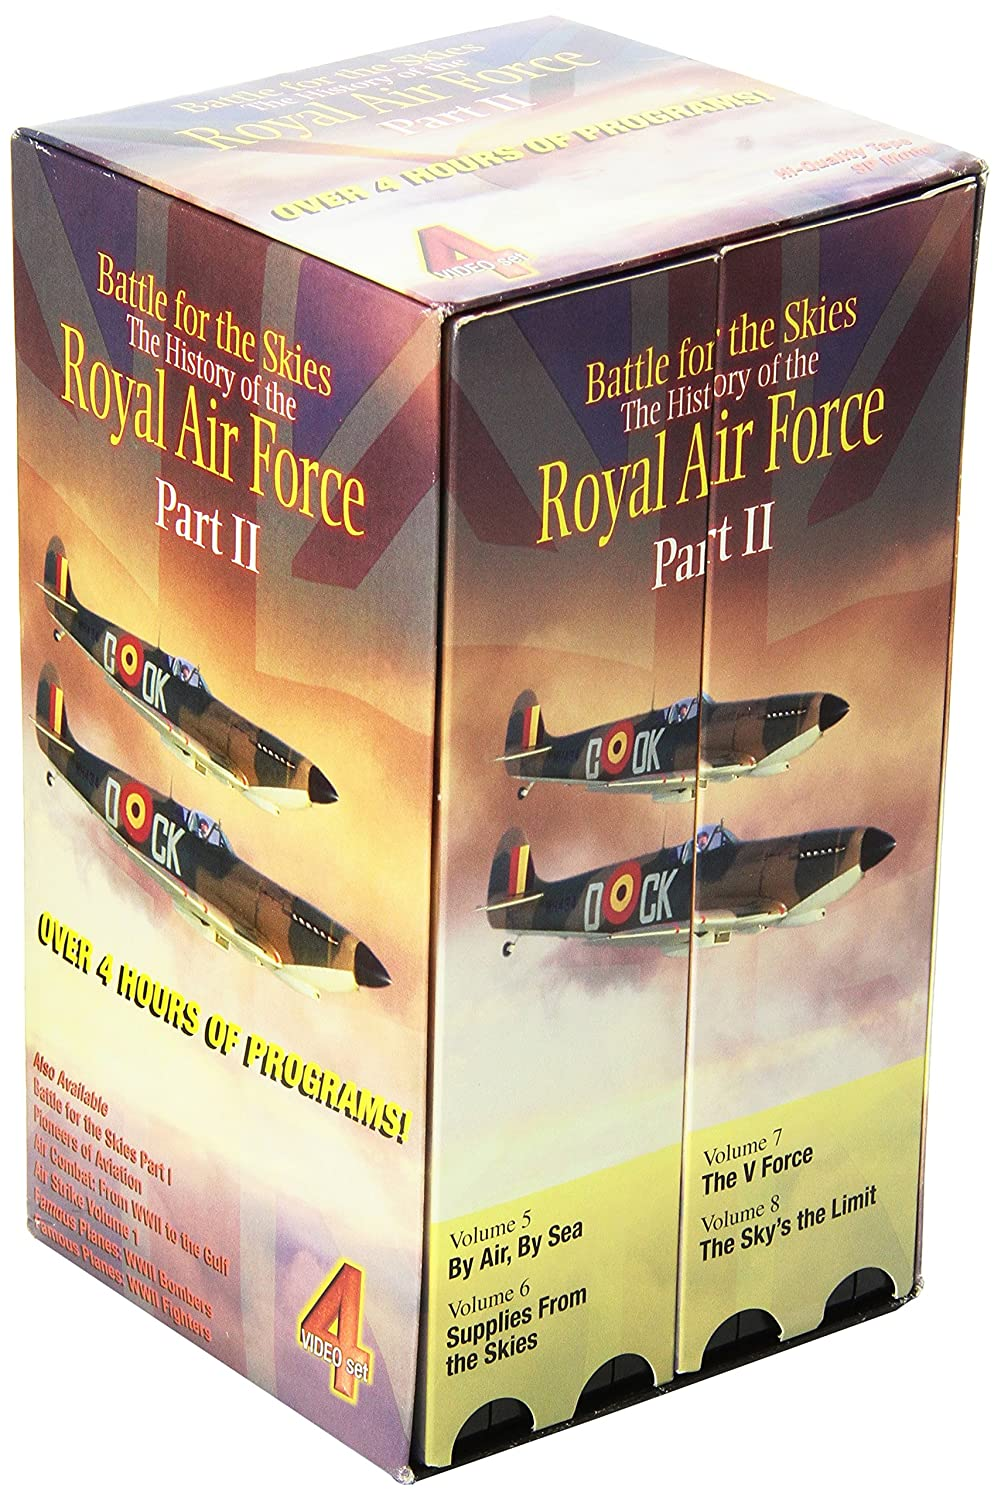 Battle for the Skies: History of Royal Air Force Part II VHS